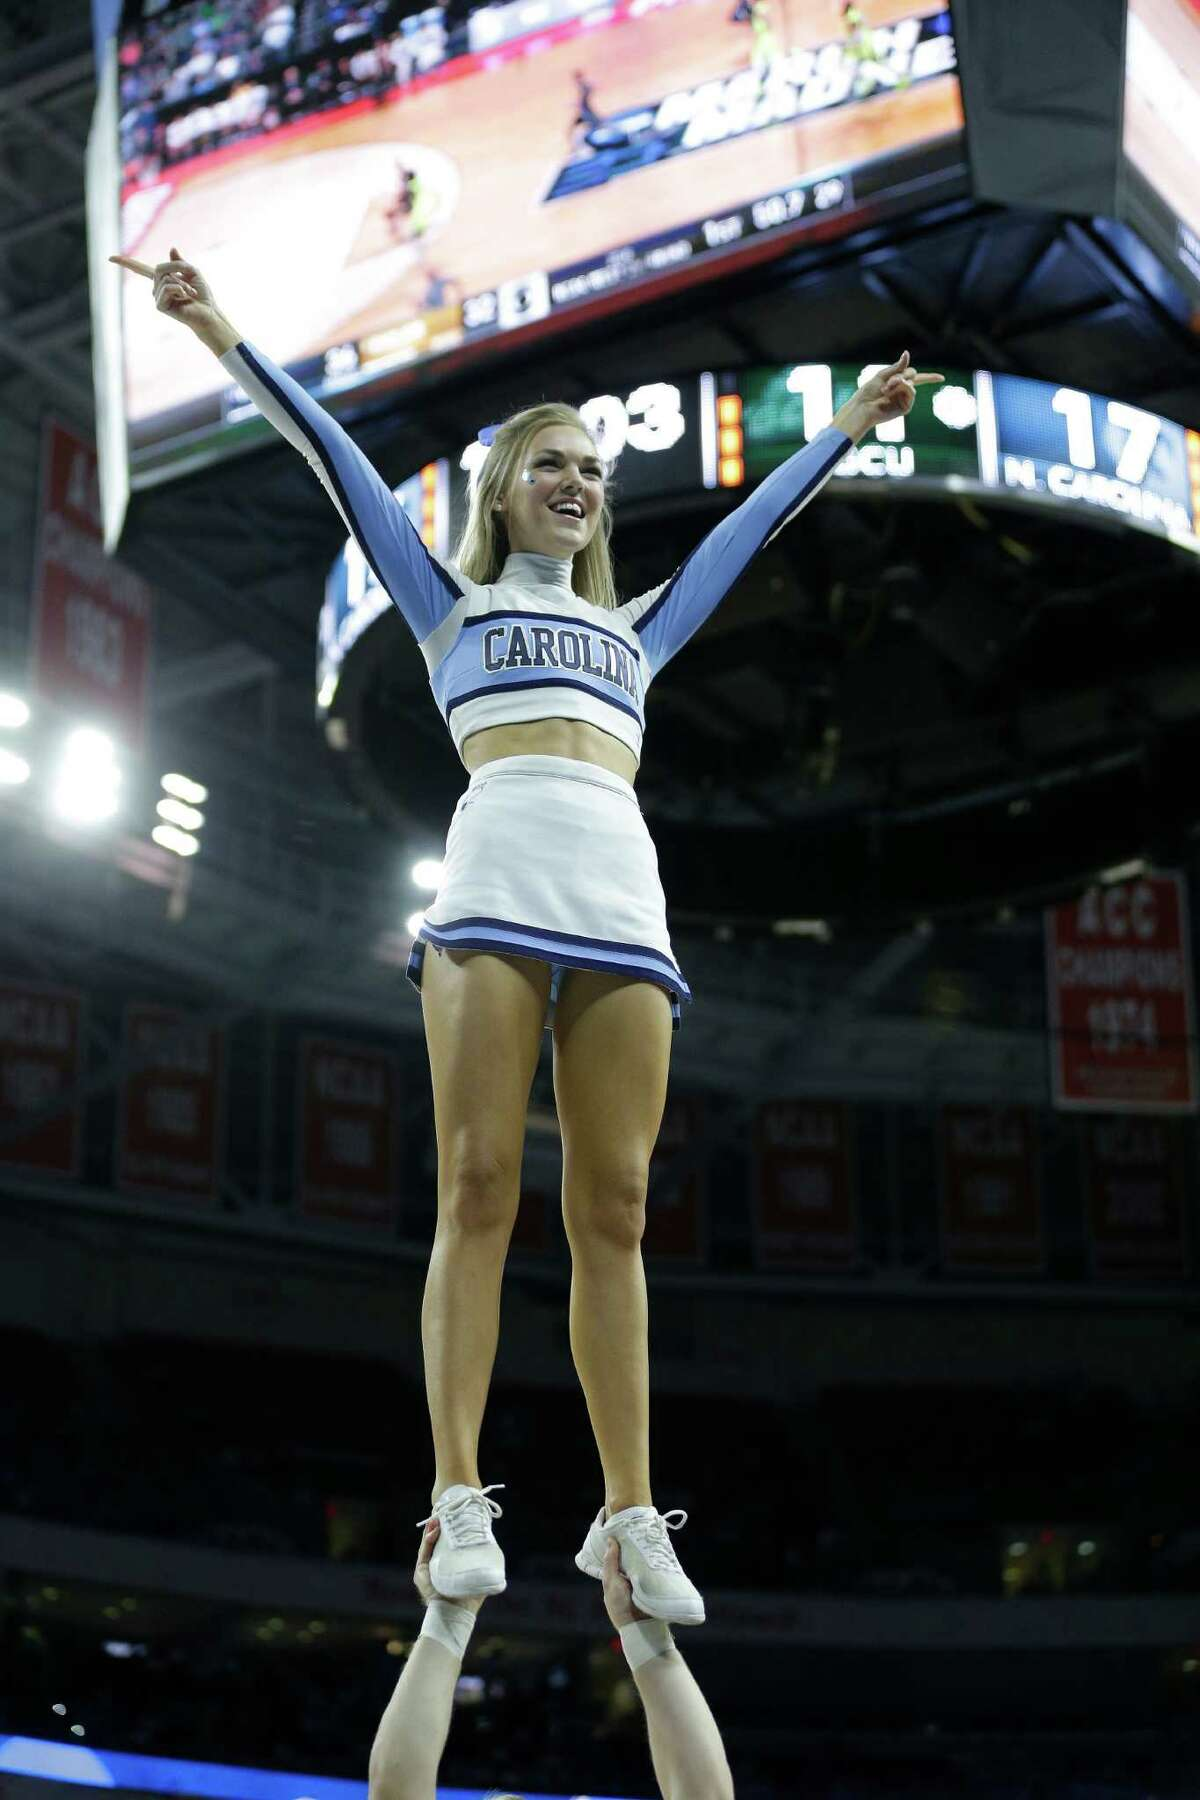 North Carolina cheerleaders perform during the first half of a first-round men's college basketball game in the NCAA Tournament between Southern California and Providence, Thursday, March 17, 2016, in Raleigh, N.C.